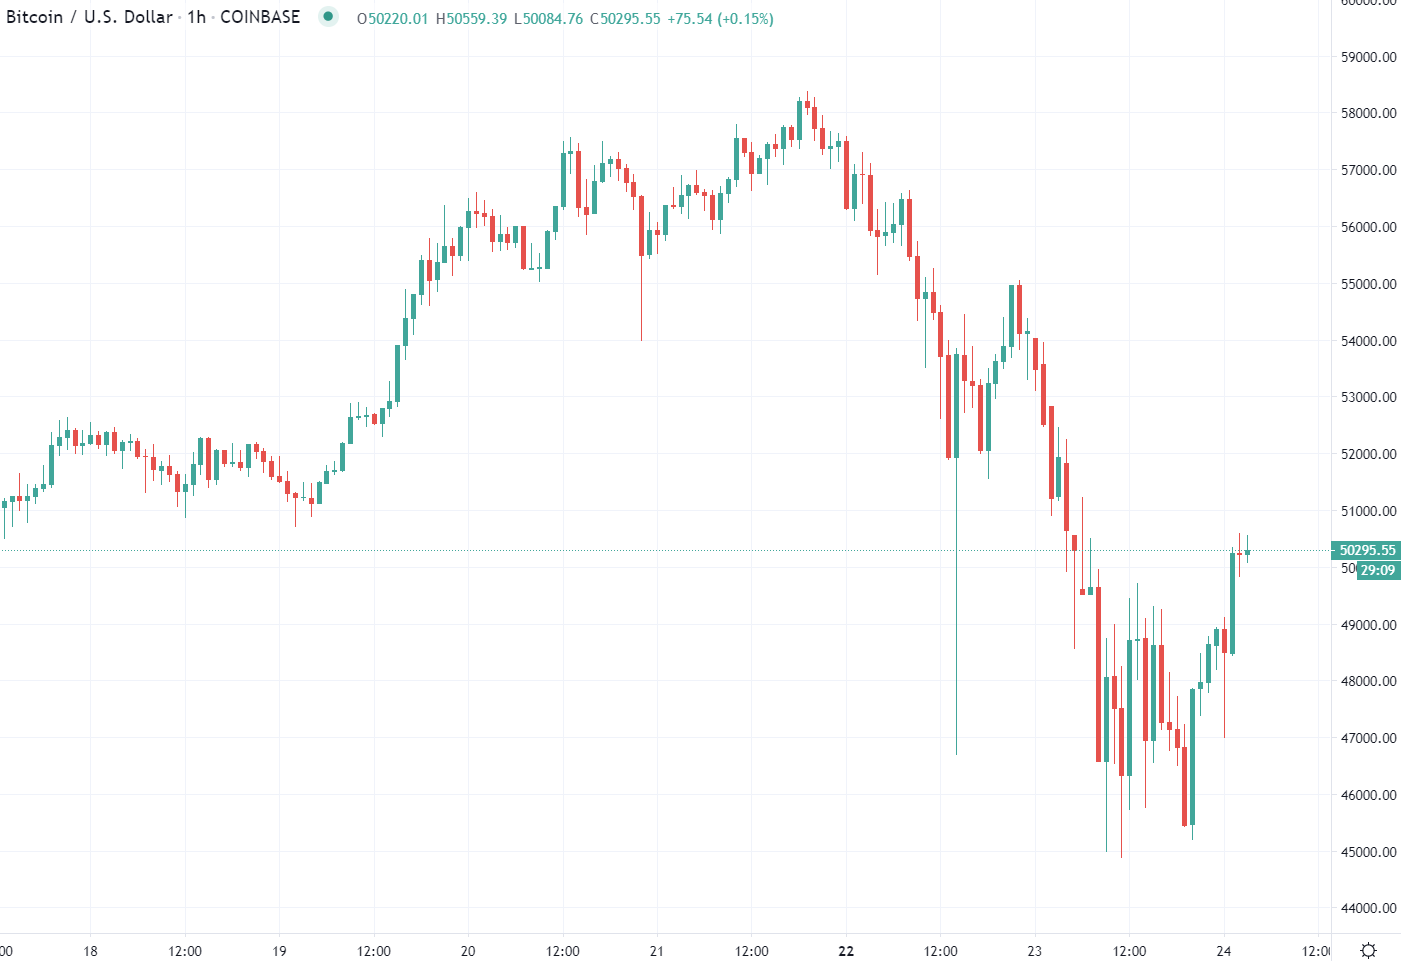 The crypto has moved higher during Asia time from lows sub-$46K.